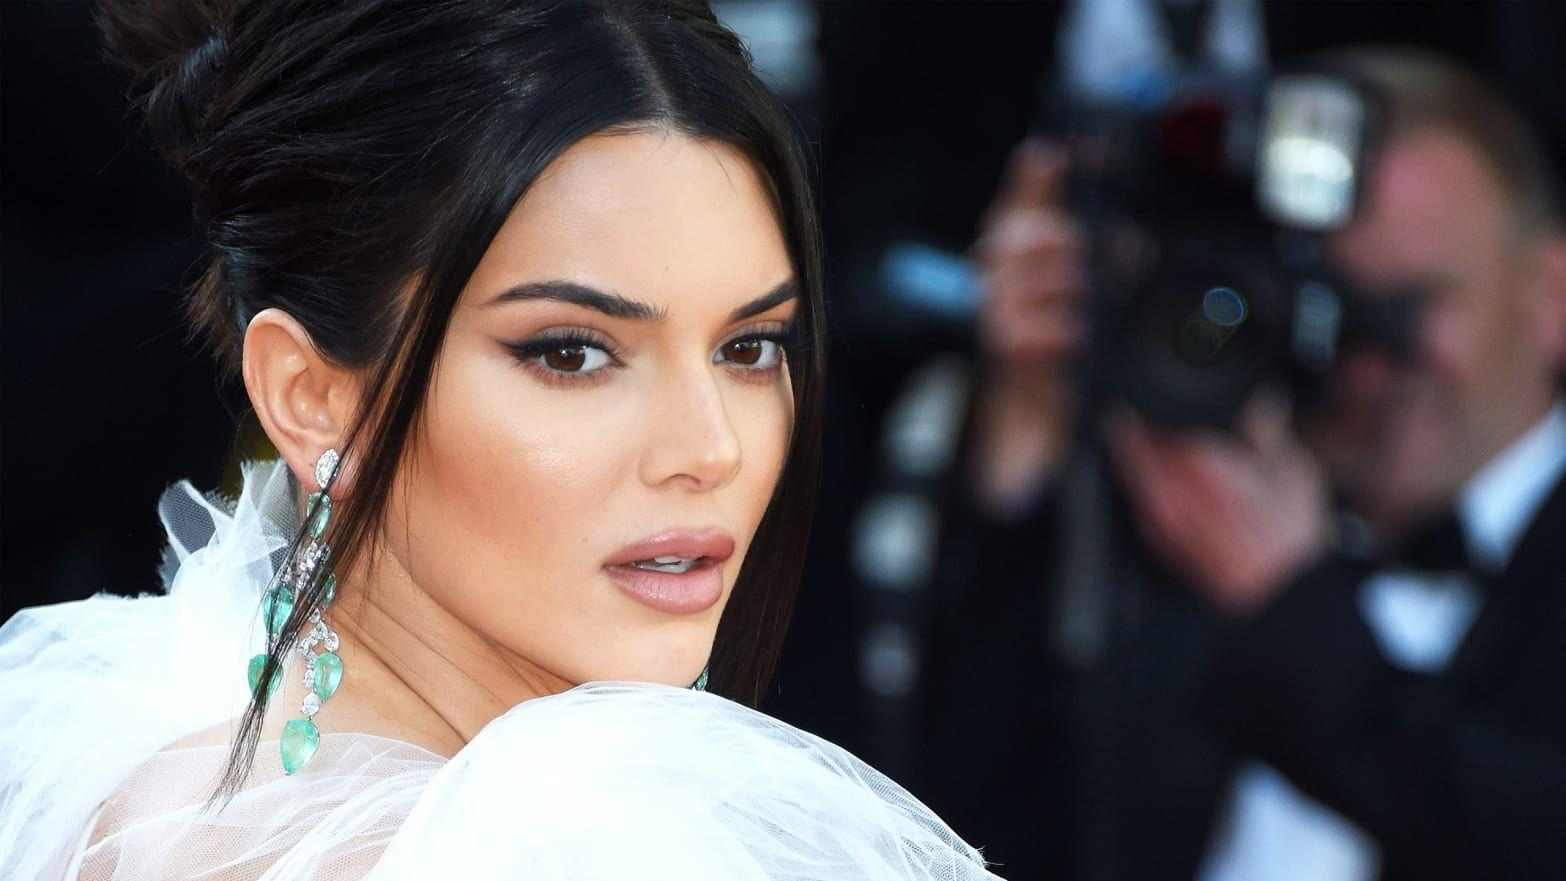 KUWK: Kendall Jenner Has Some Advice For Those Who Look Up To Her - Reveals How She Stays Grounded In The Spotlight!